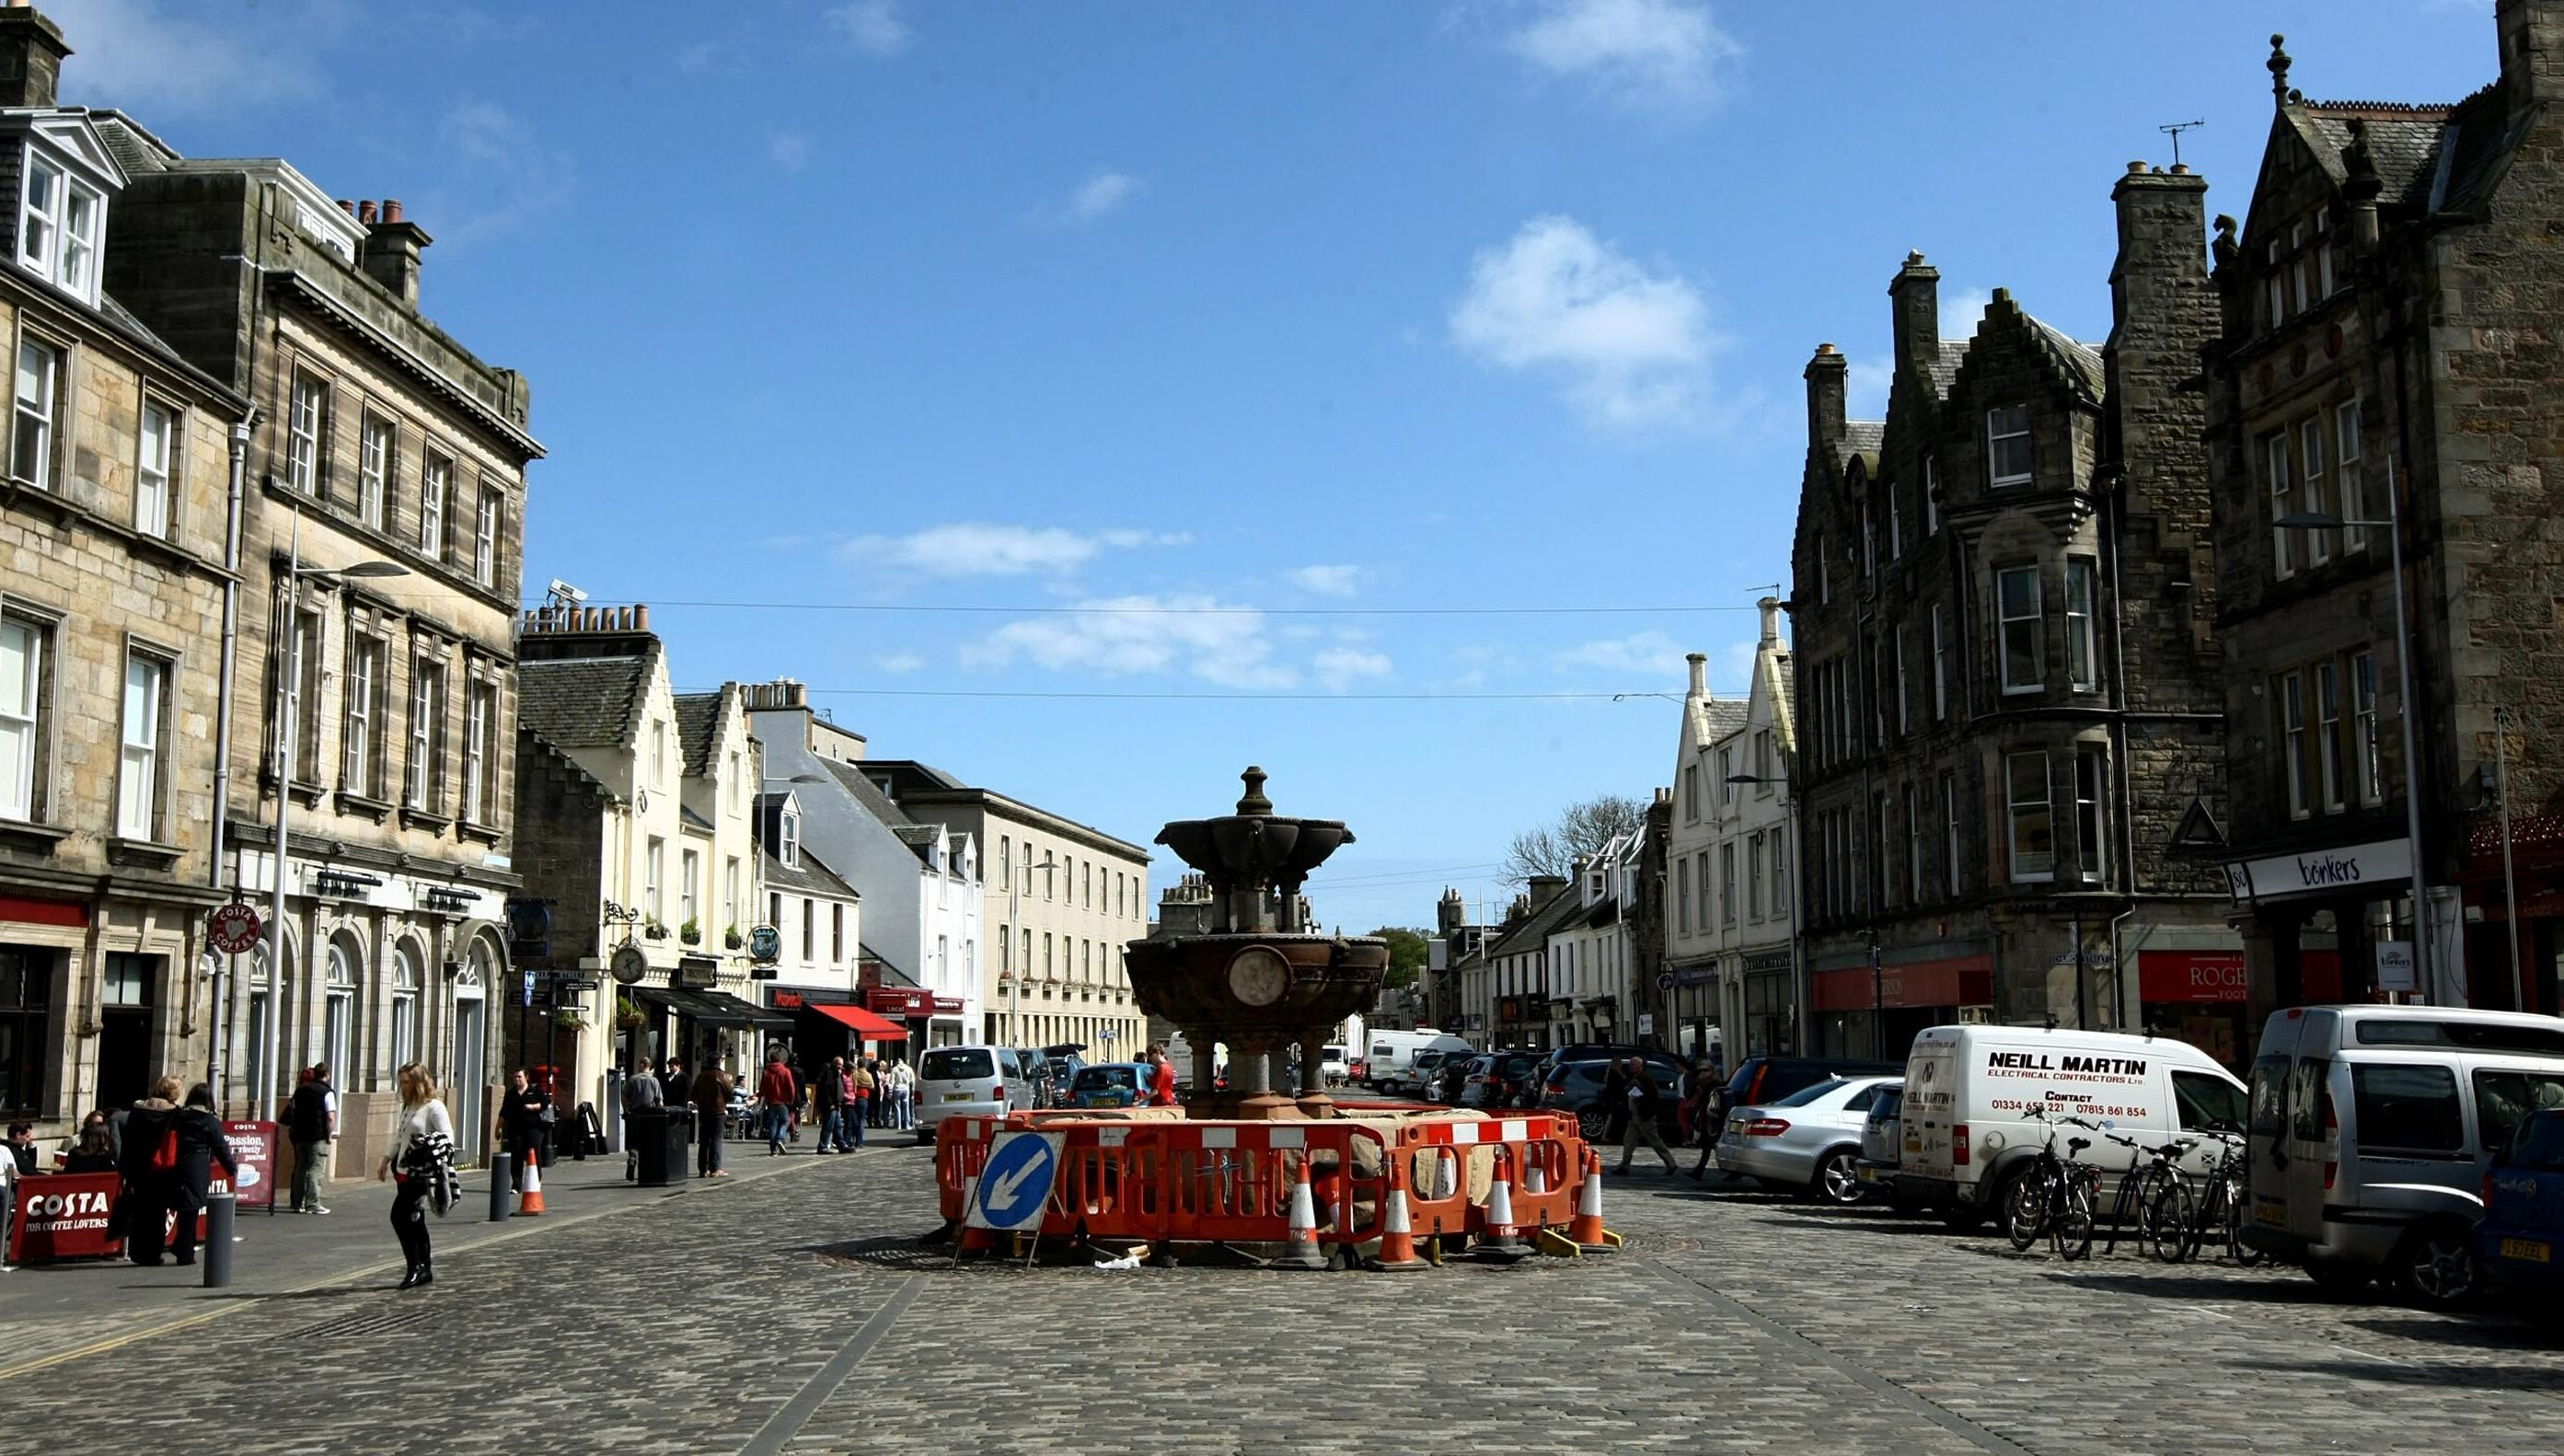 The moratorium on new HMOs in St Andrews has been prolonged for another year.